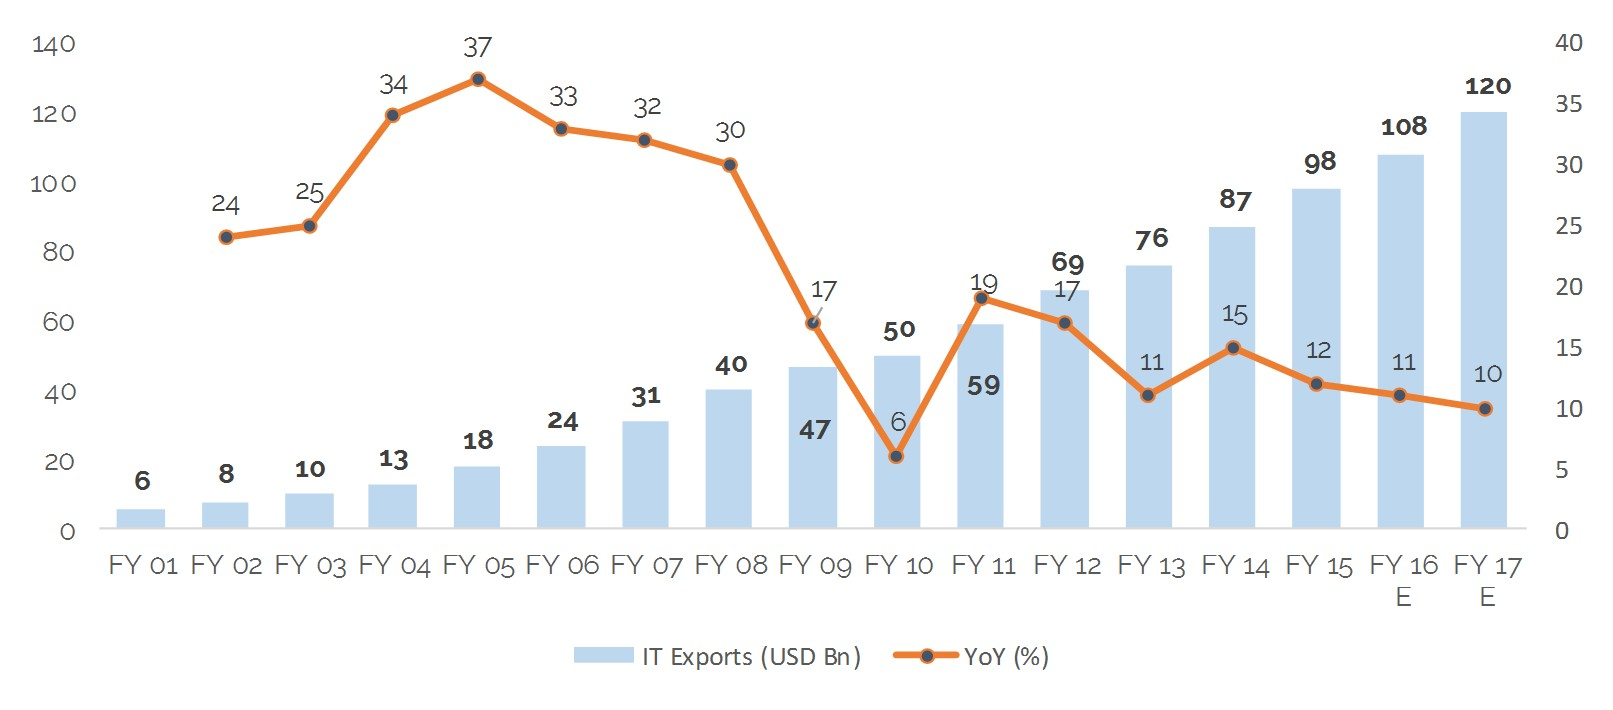 Exhibit-6-Indian-IT-BPM-exports-and-growth